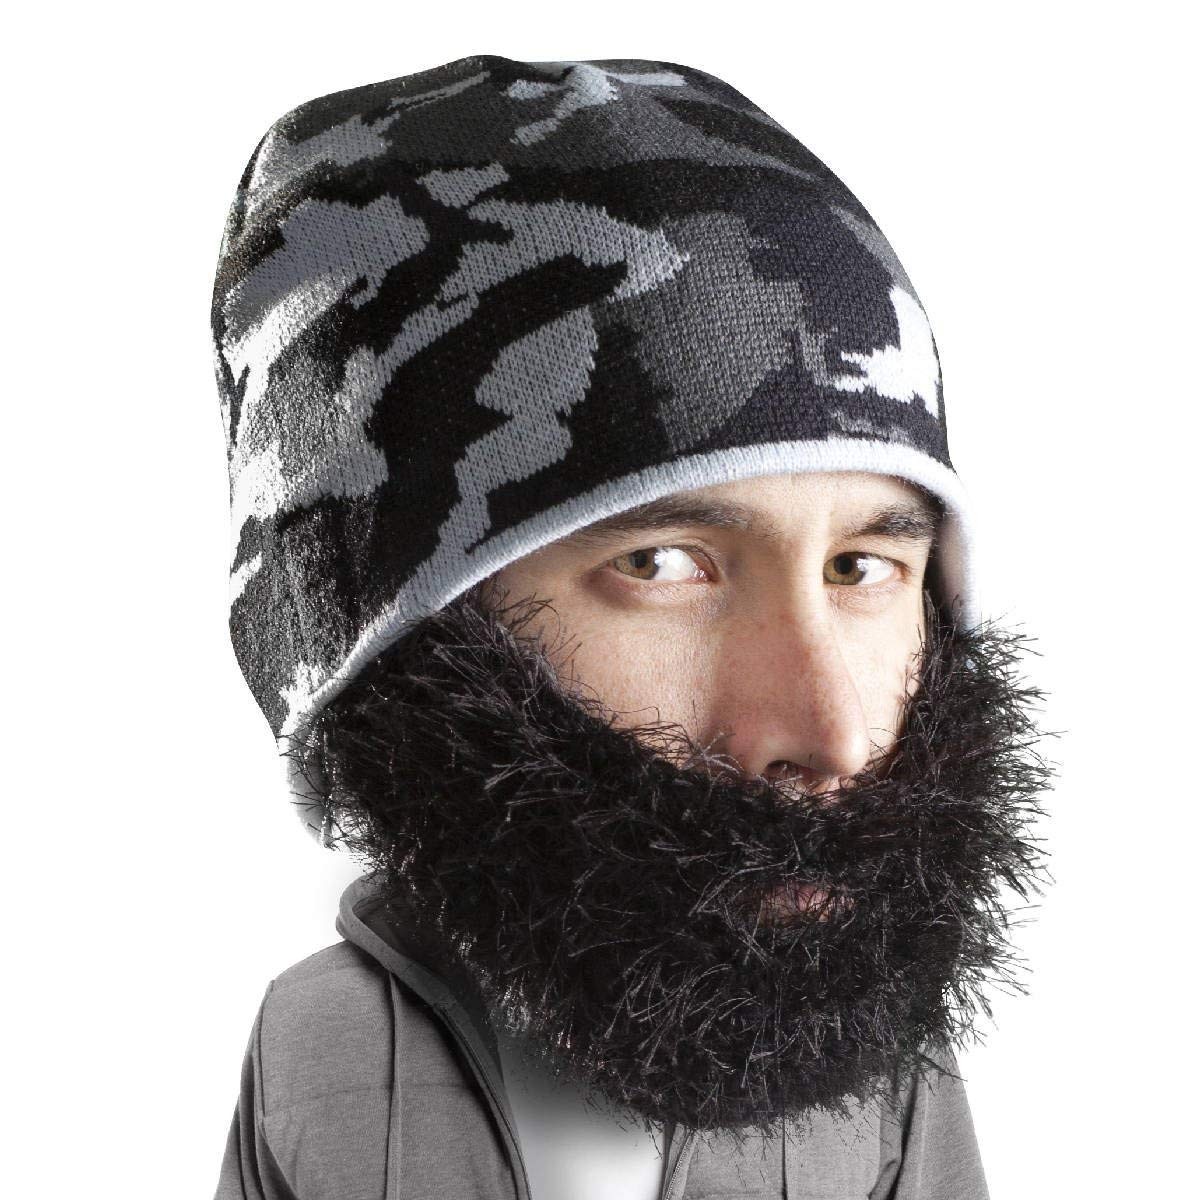 0f221a625b8 Get Quotations · Beard Head - The Original Bushy Maverick Knit Beard Beanie